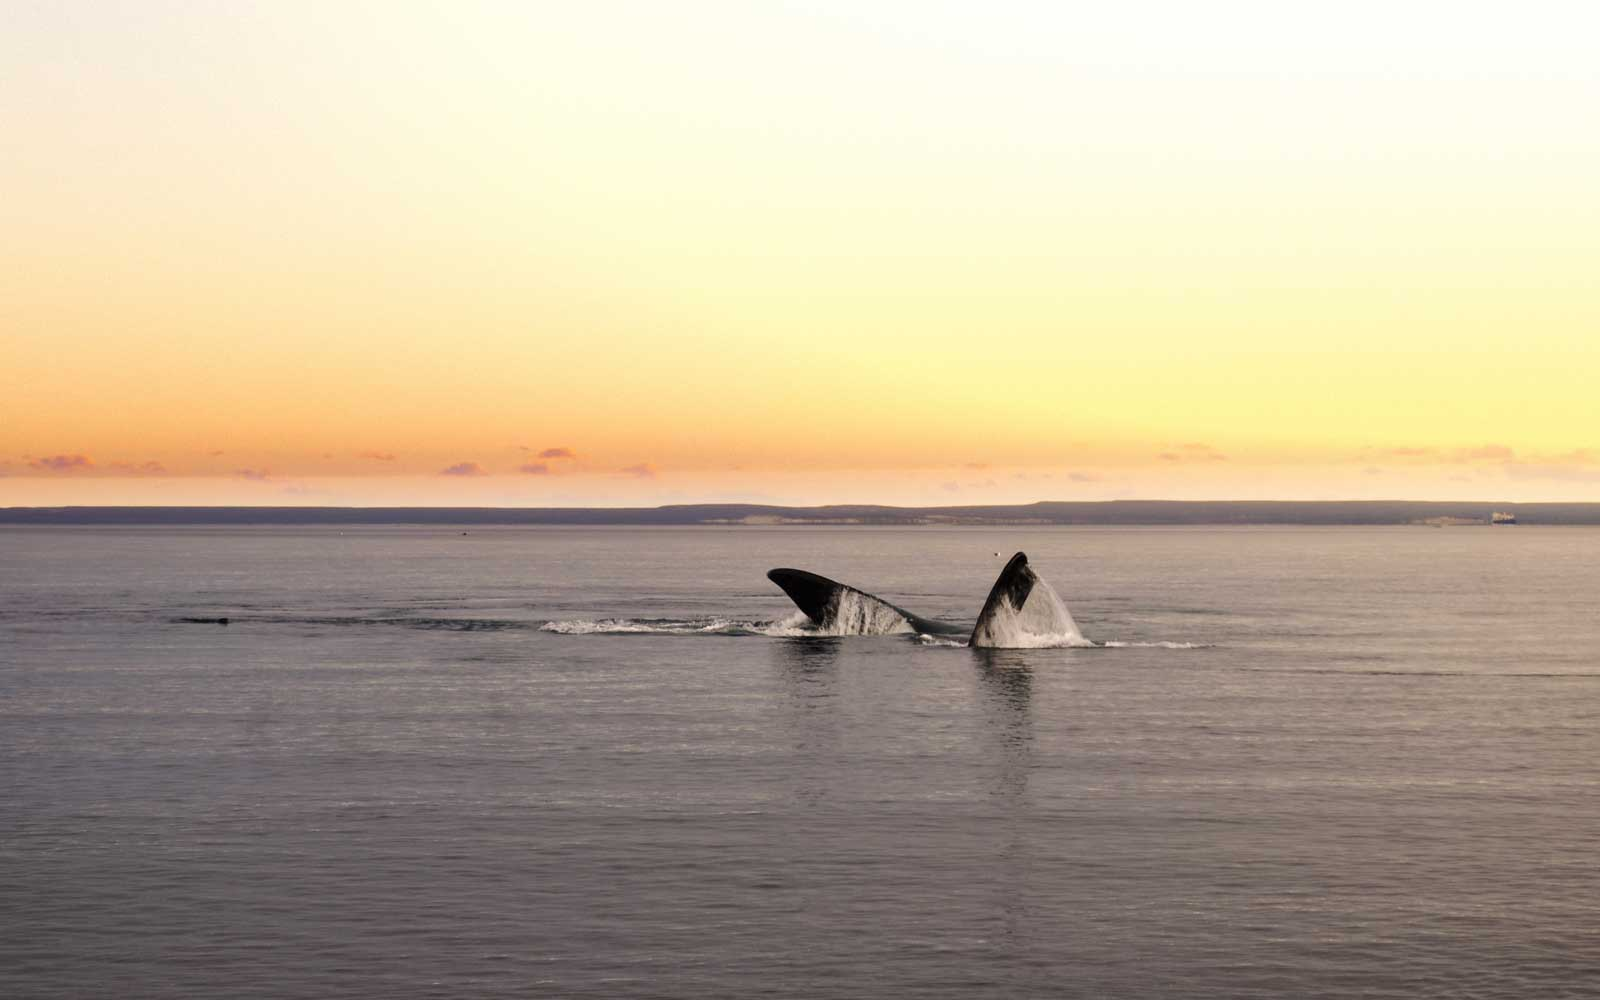 A whale at El Doradillo Beach in Puerto Madryin, Chubut Province, Argentina